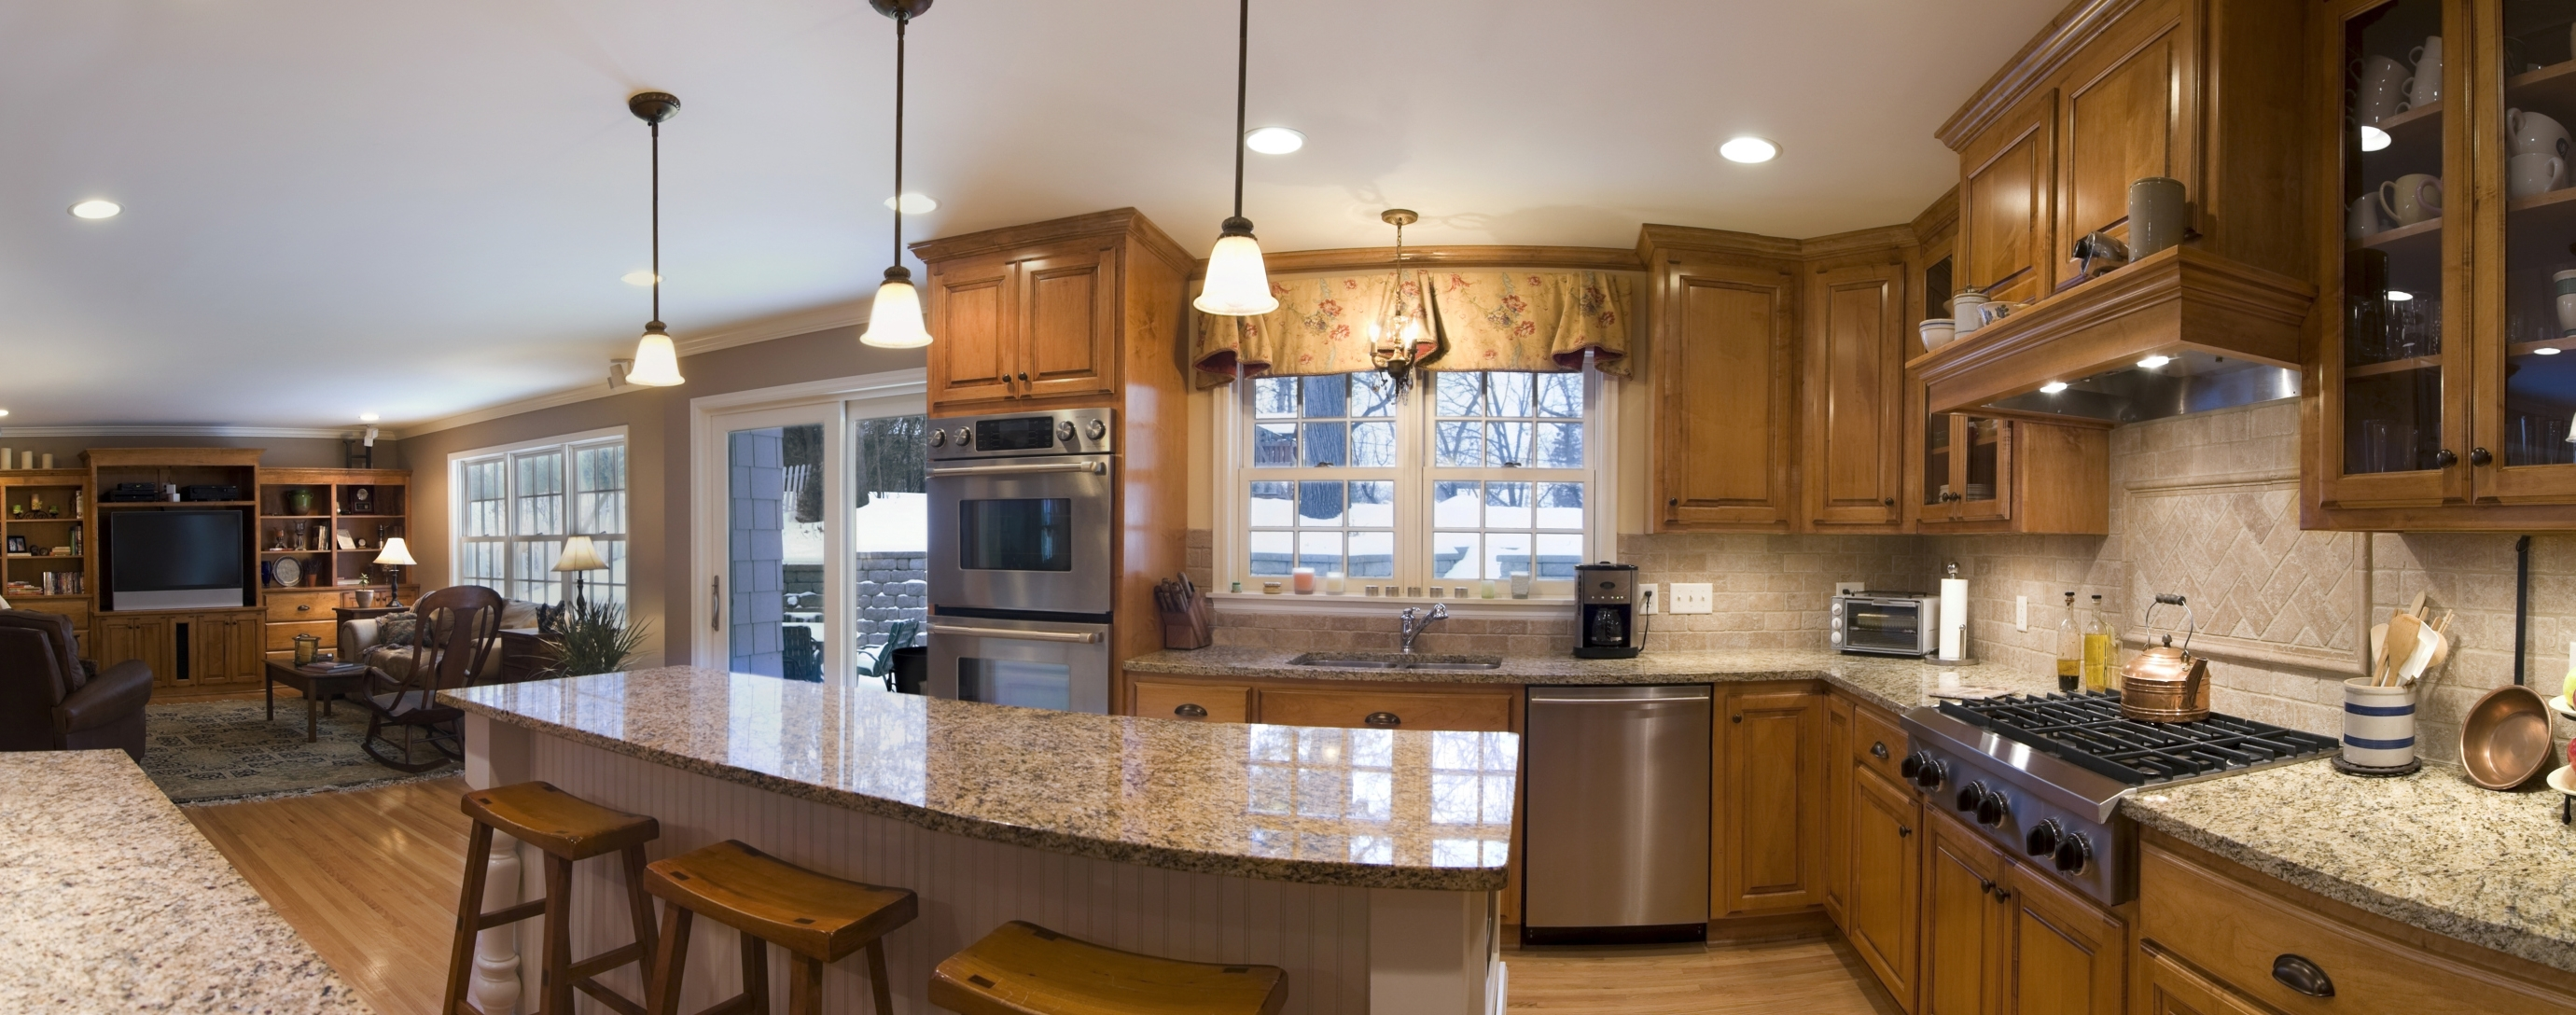 kitchen family room ideas kitchen family room ideas modern family rooms incredible family rooms designed by